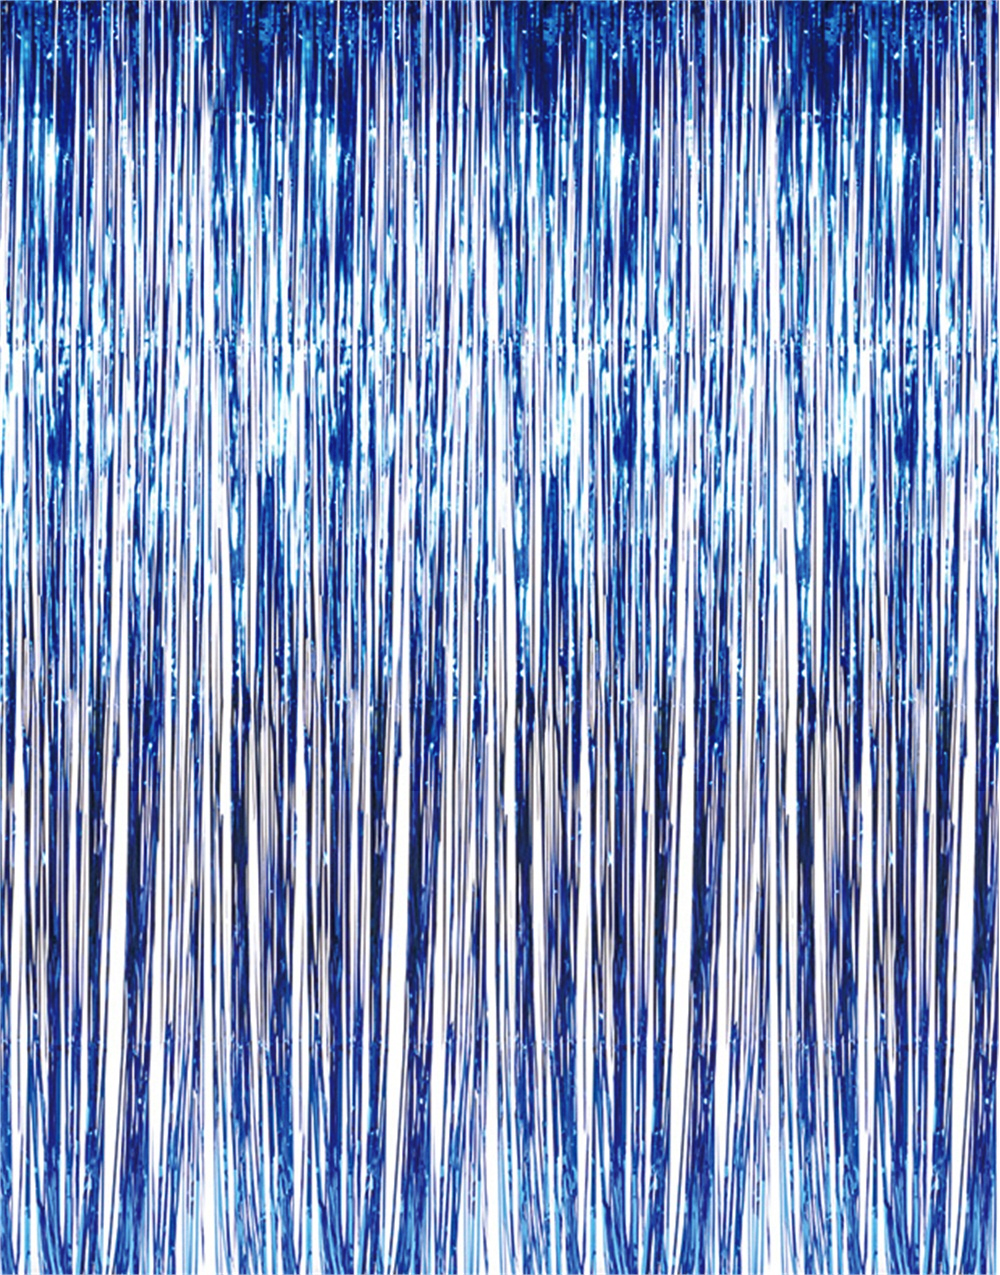 Shiny Blue Tinsel Foil Fringe Door Window Curtain Party Holiday Decoration